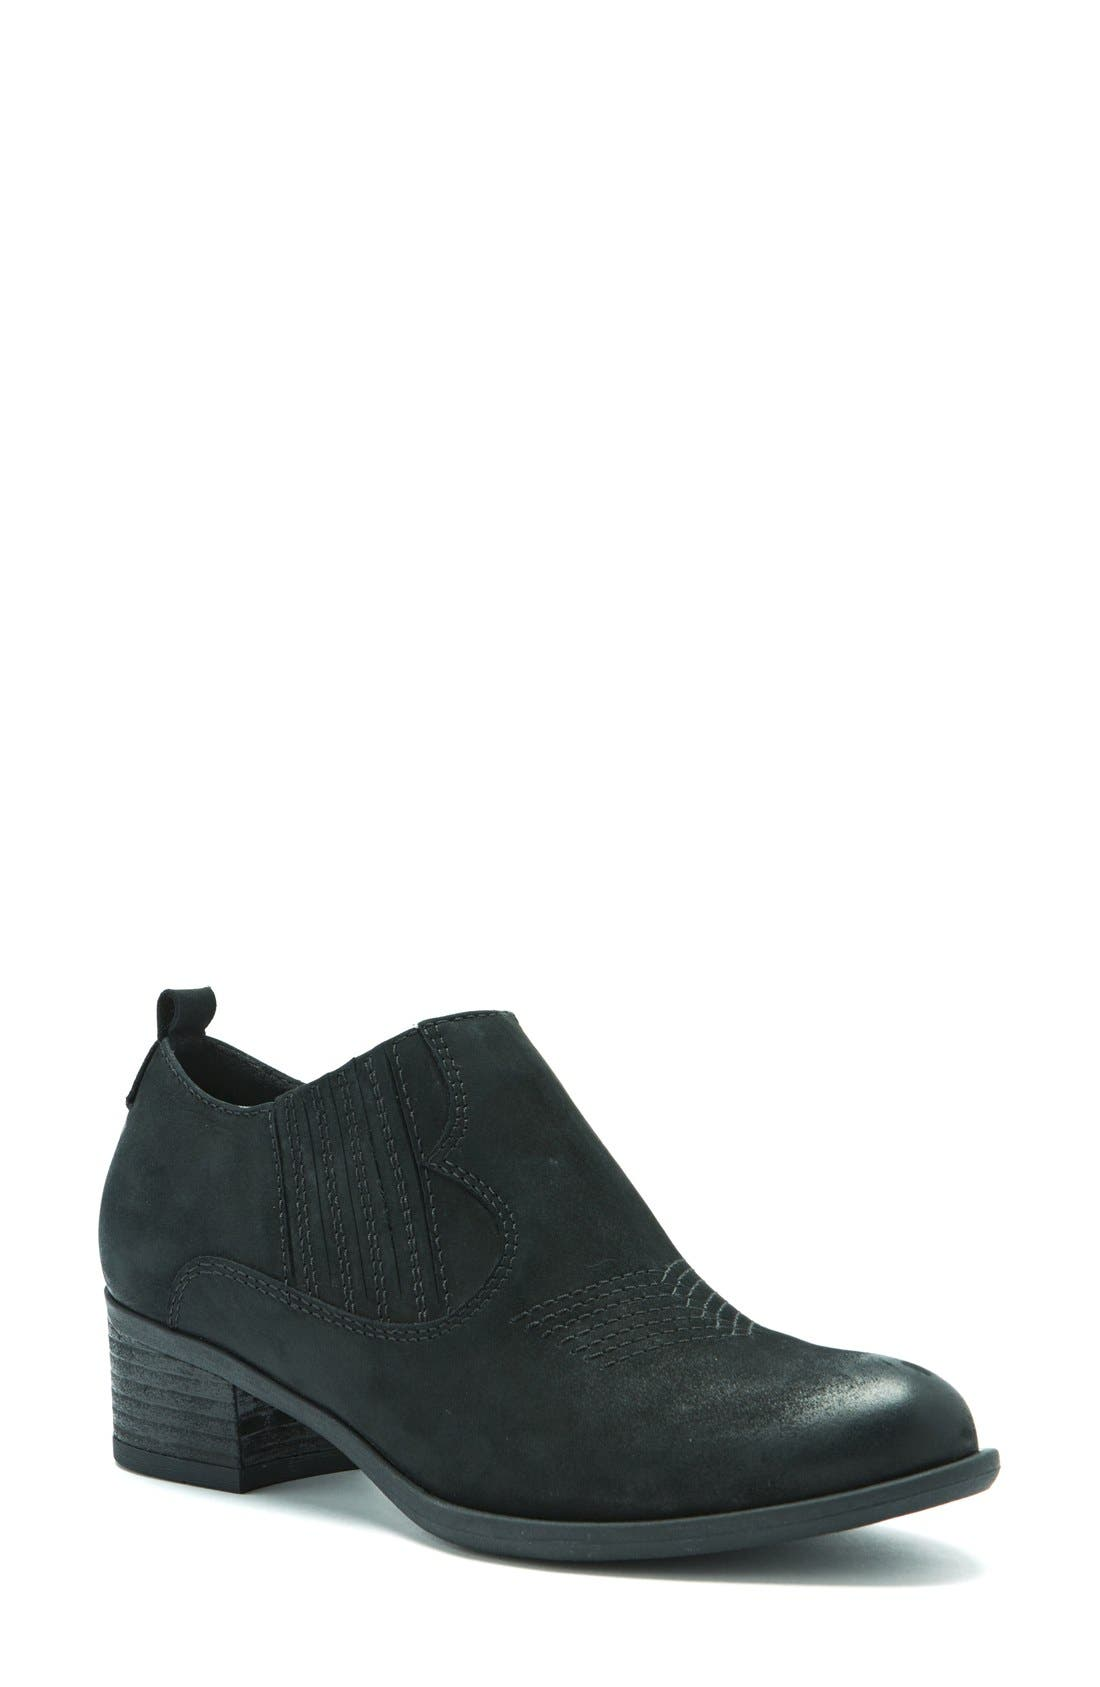 Maddox Waterproof Western Bootie,                         Main,                         color, Black Leather